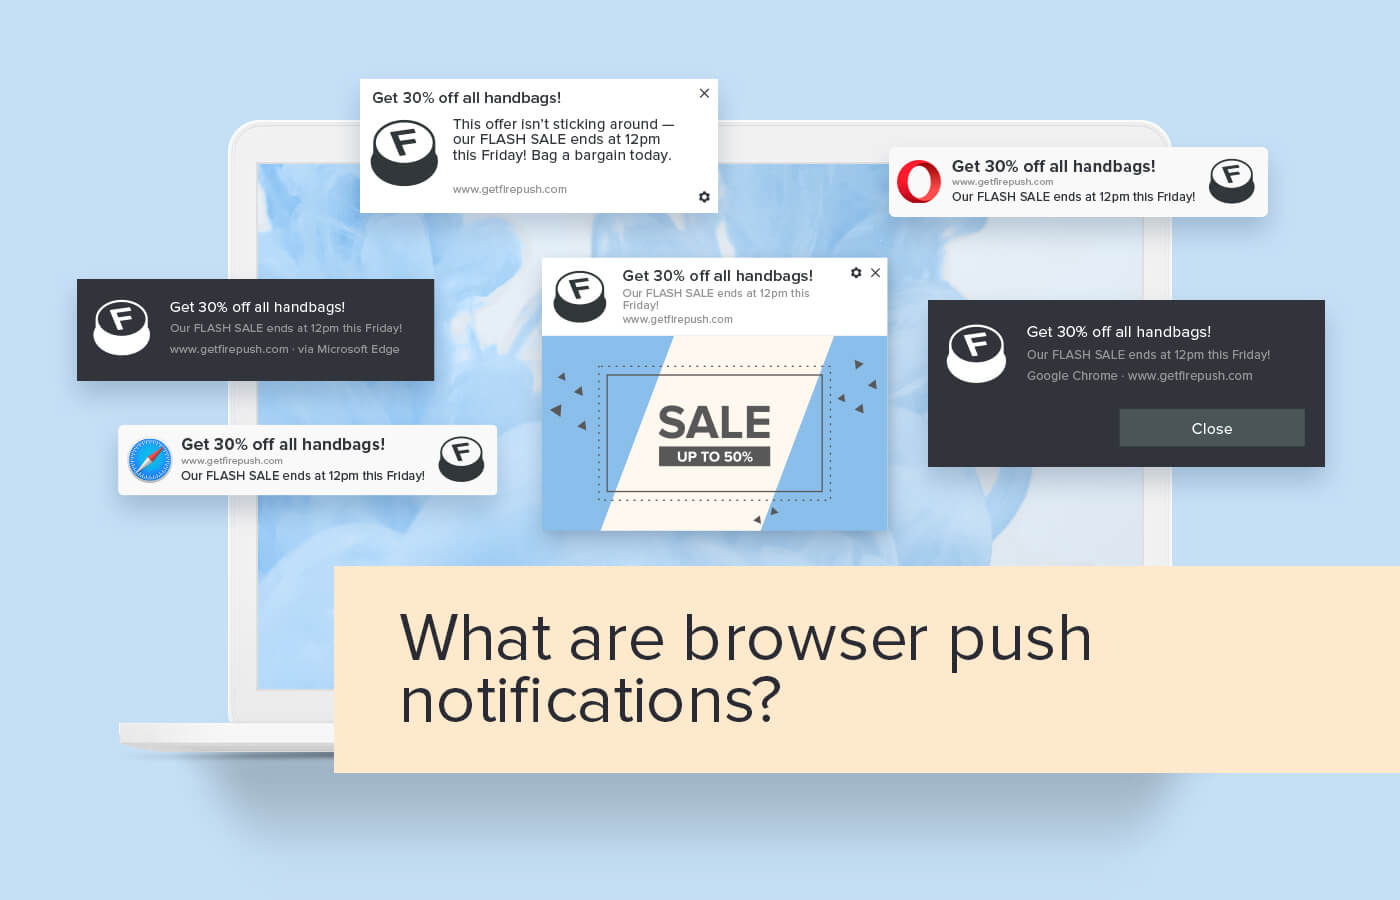 What are browser push notifications?